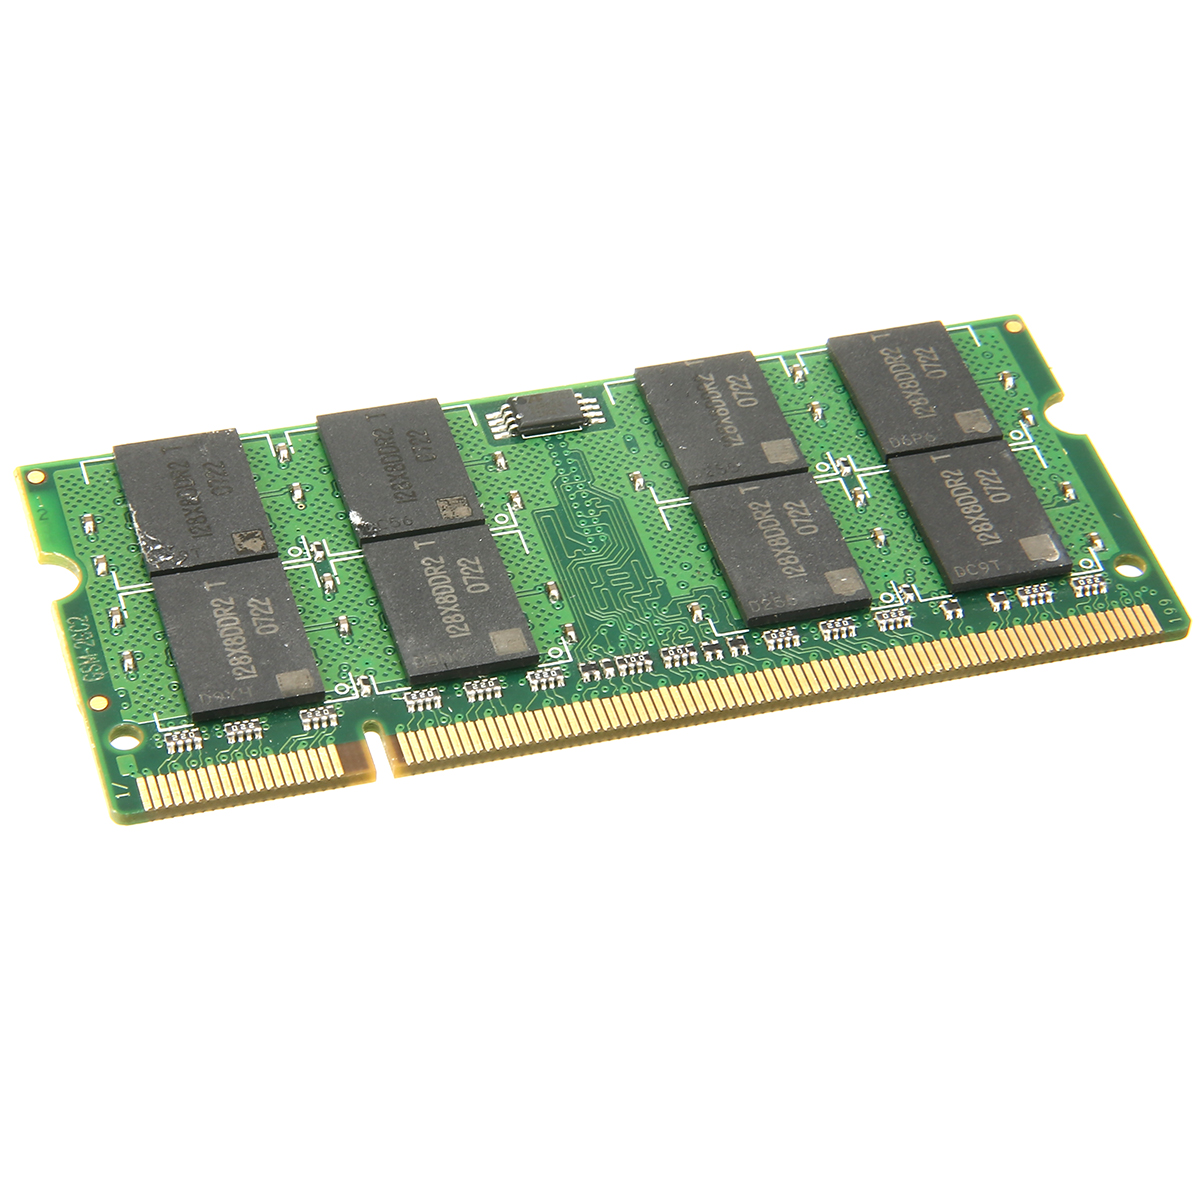 1.8V 2GB 200pin SODIMM Memory Ram Professional PC2-6400 DDR2-800MHz Non-ECC CL5 Computer Laptop Notebook Rams Unbuffered